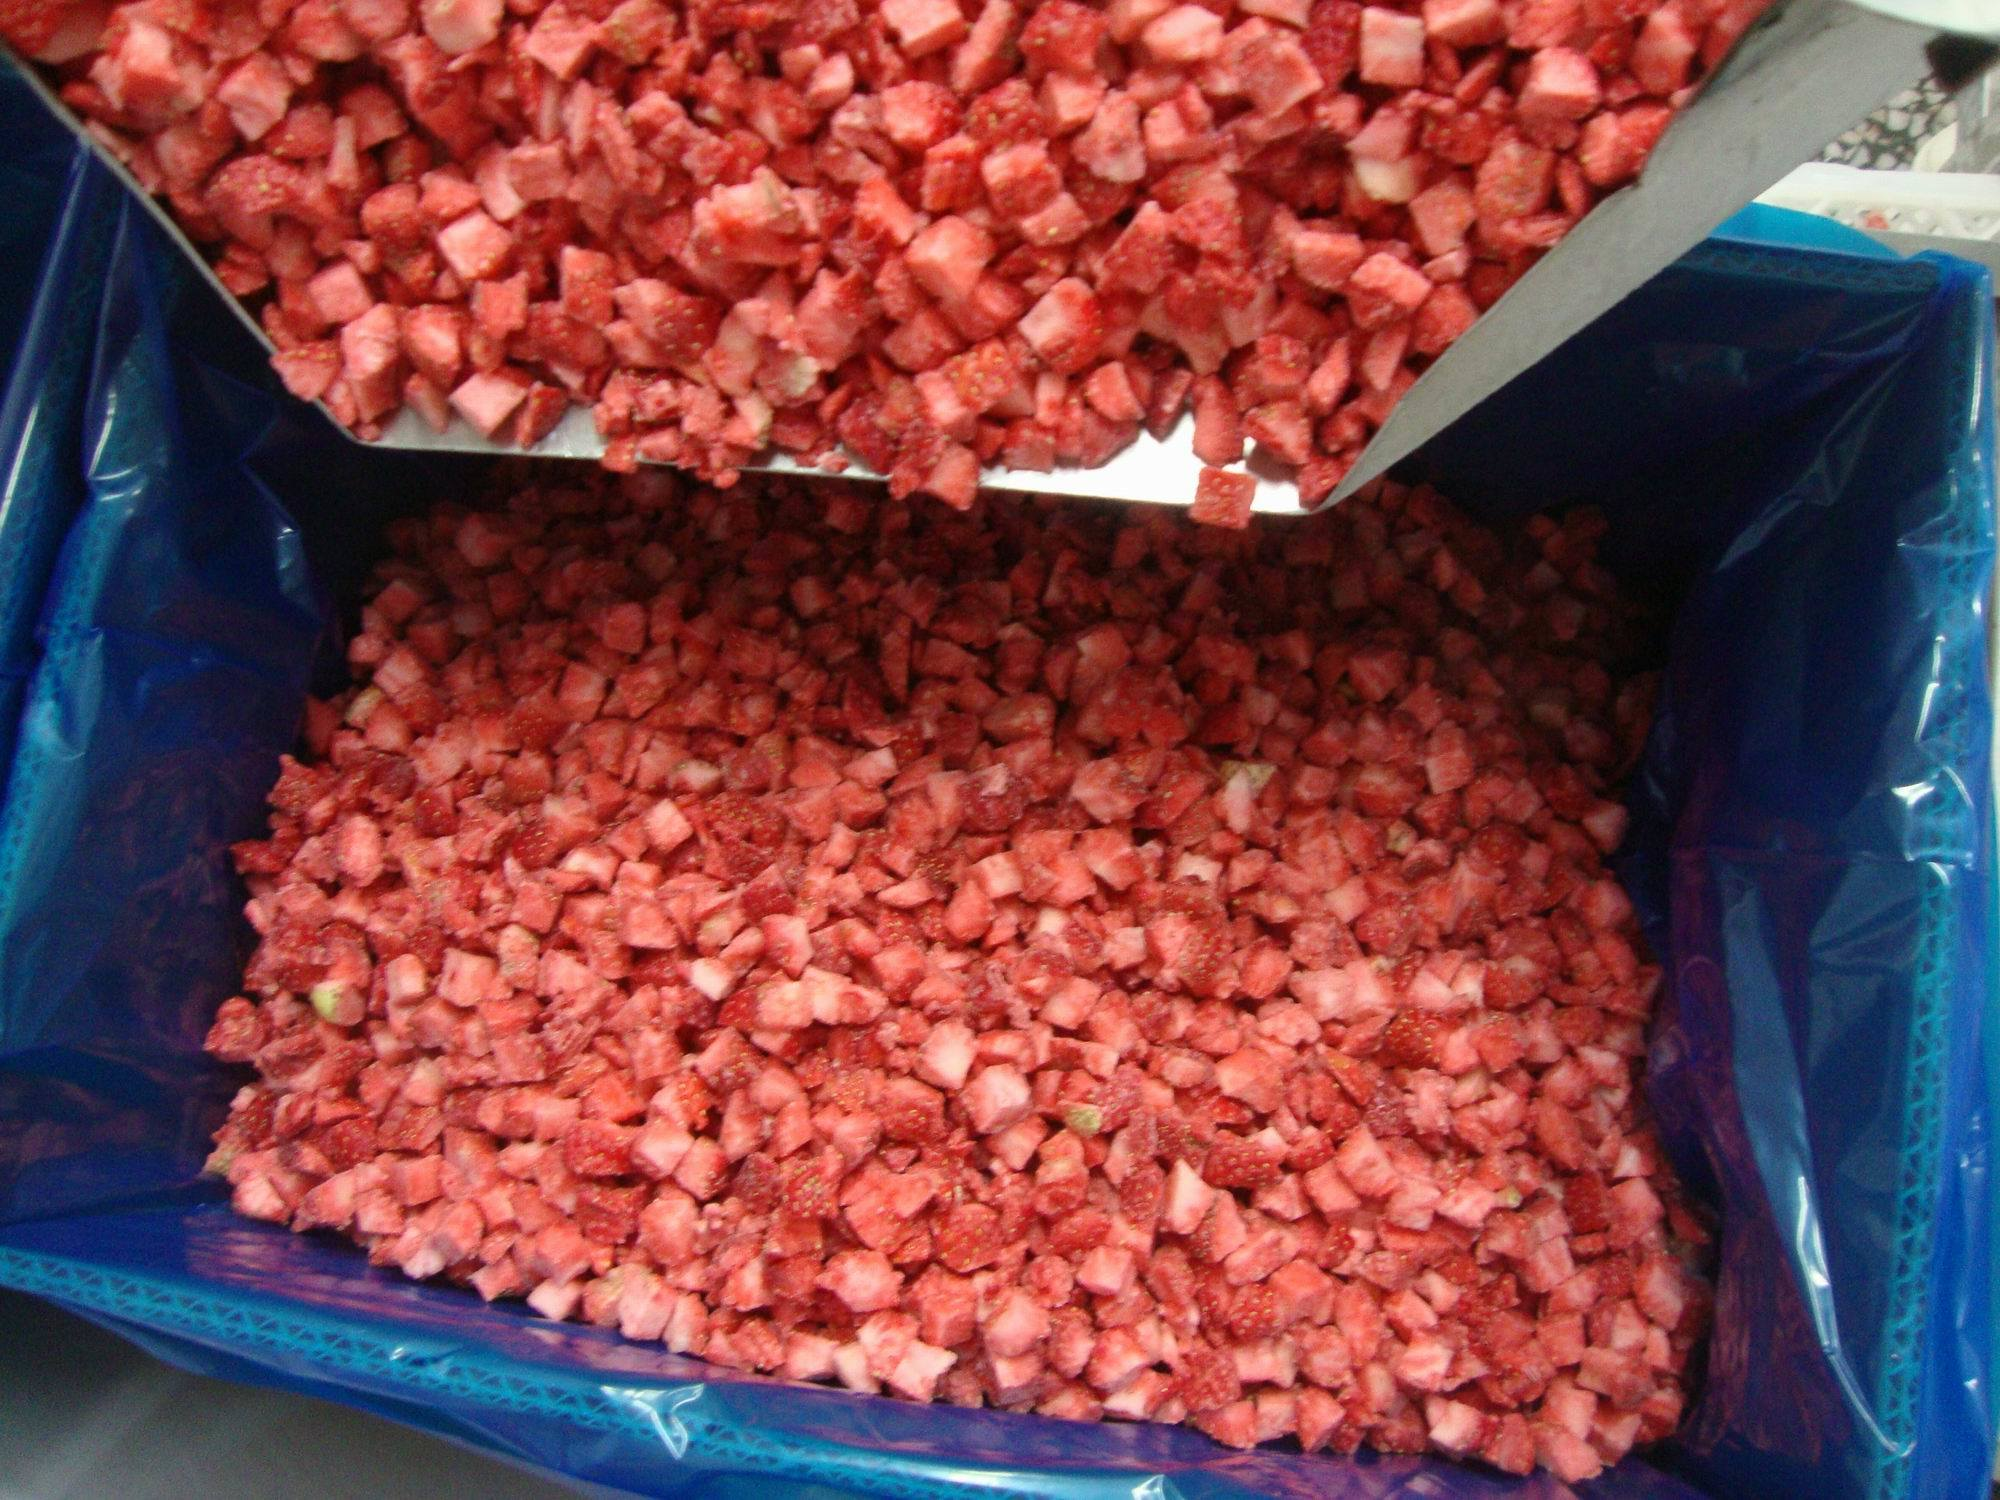 IQF Strawberry Dices or Frozen Strawberry Dices